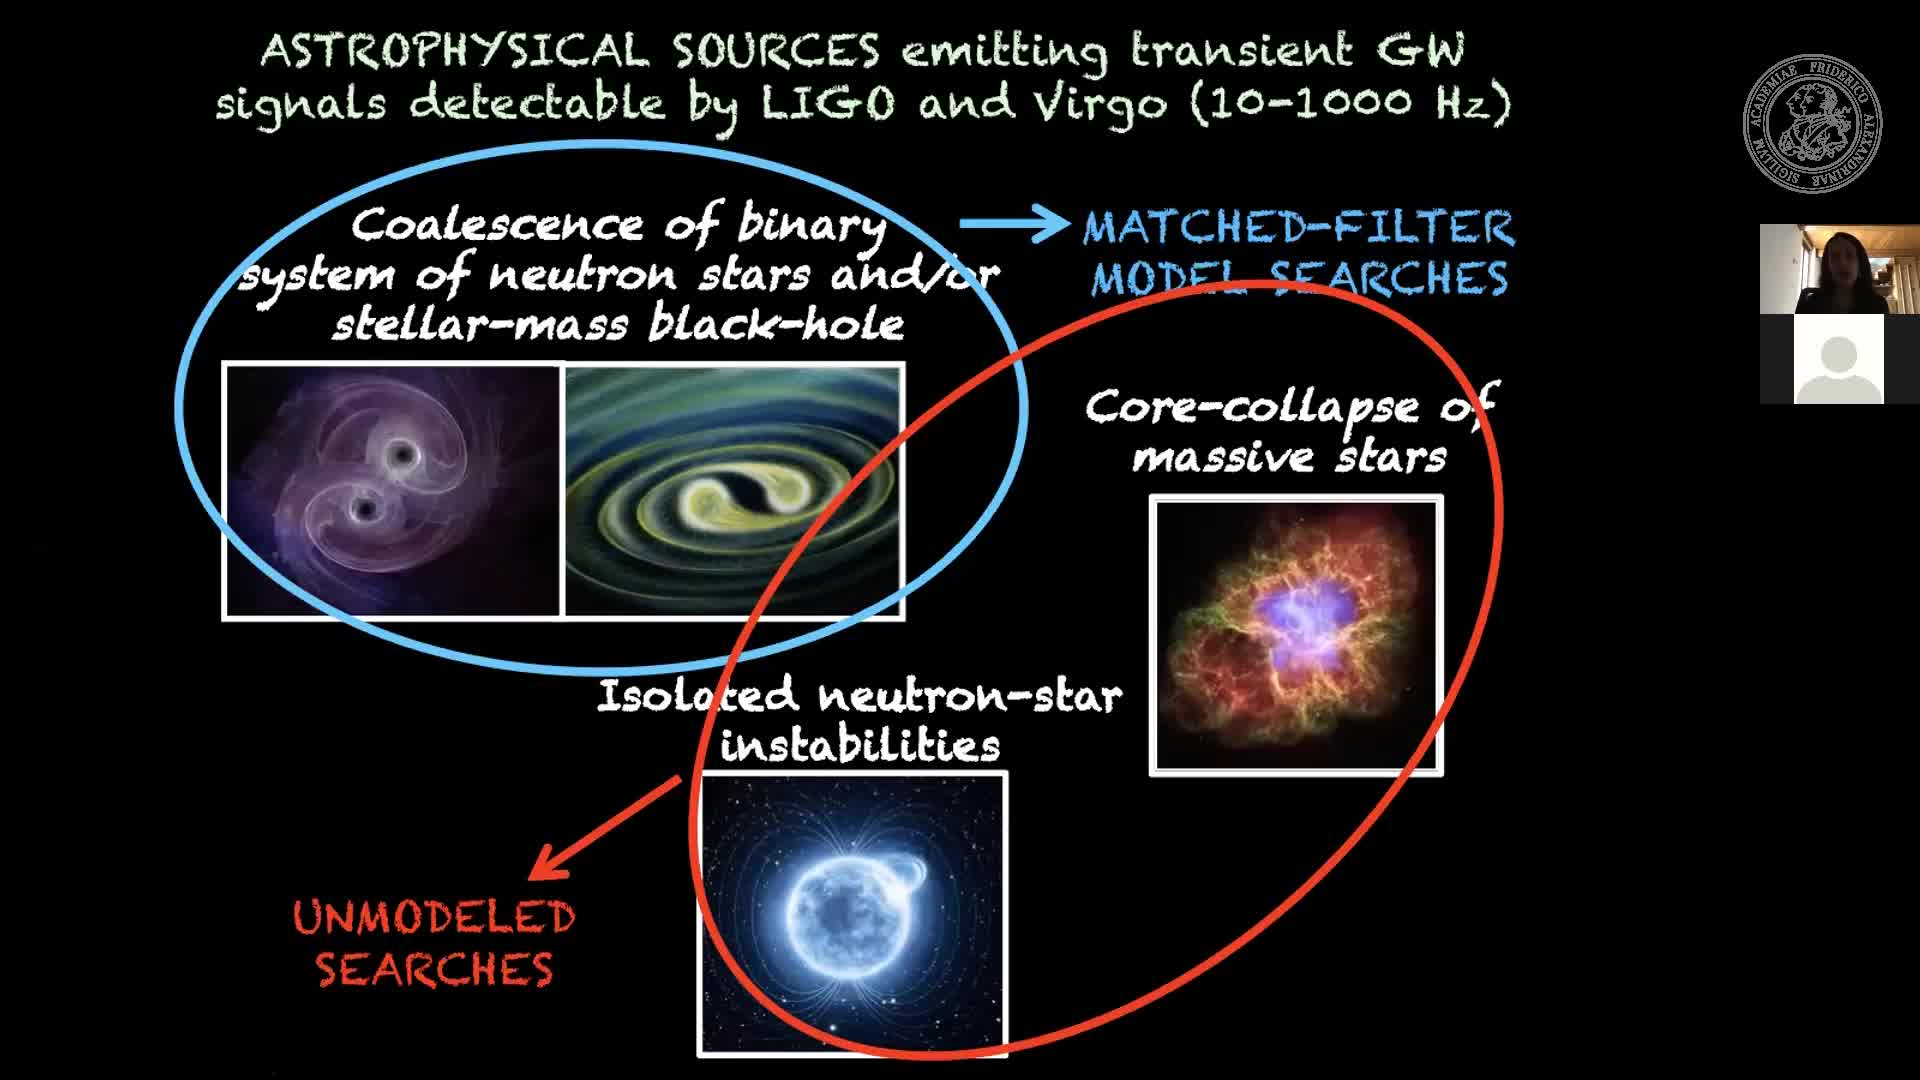 03 June 2020: Marica Branchesi (Gran Sasso Science Institute): Multi-messenger astronomy including gravitational-wave preview image